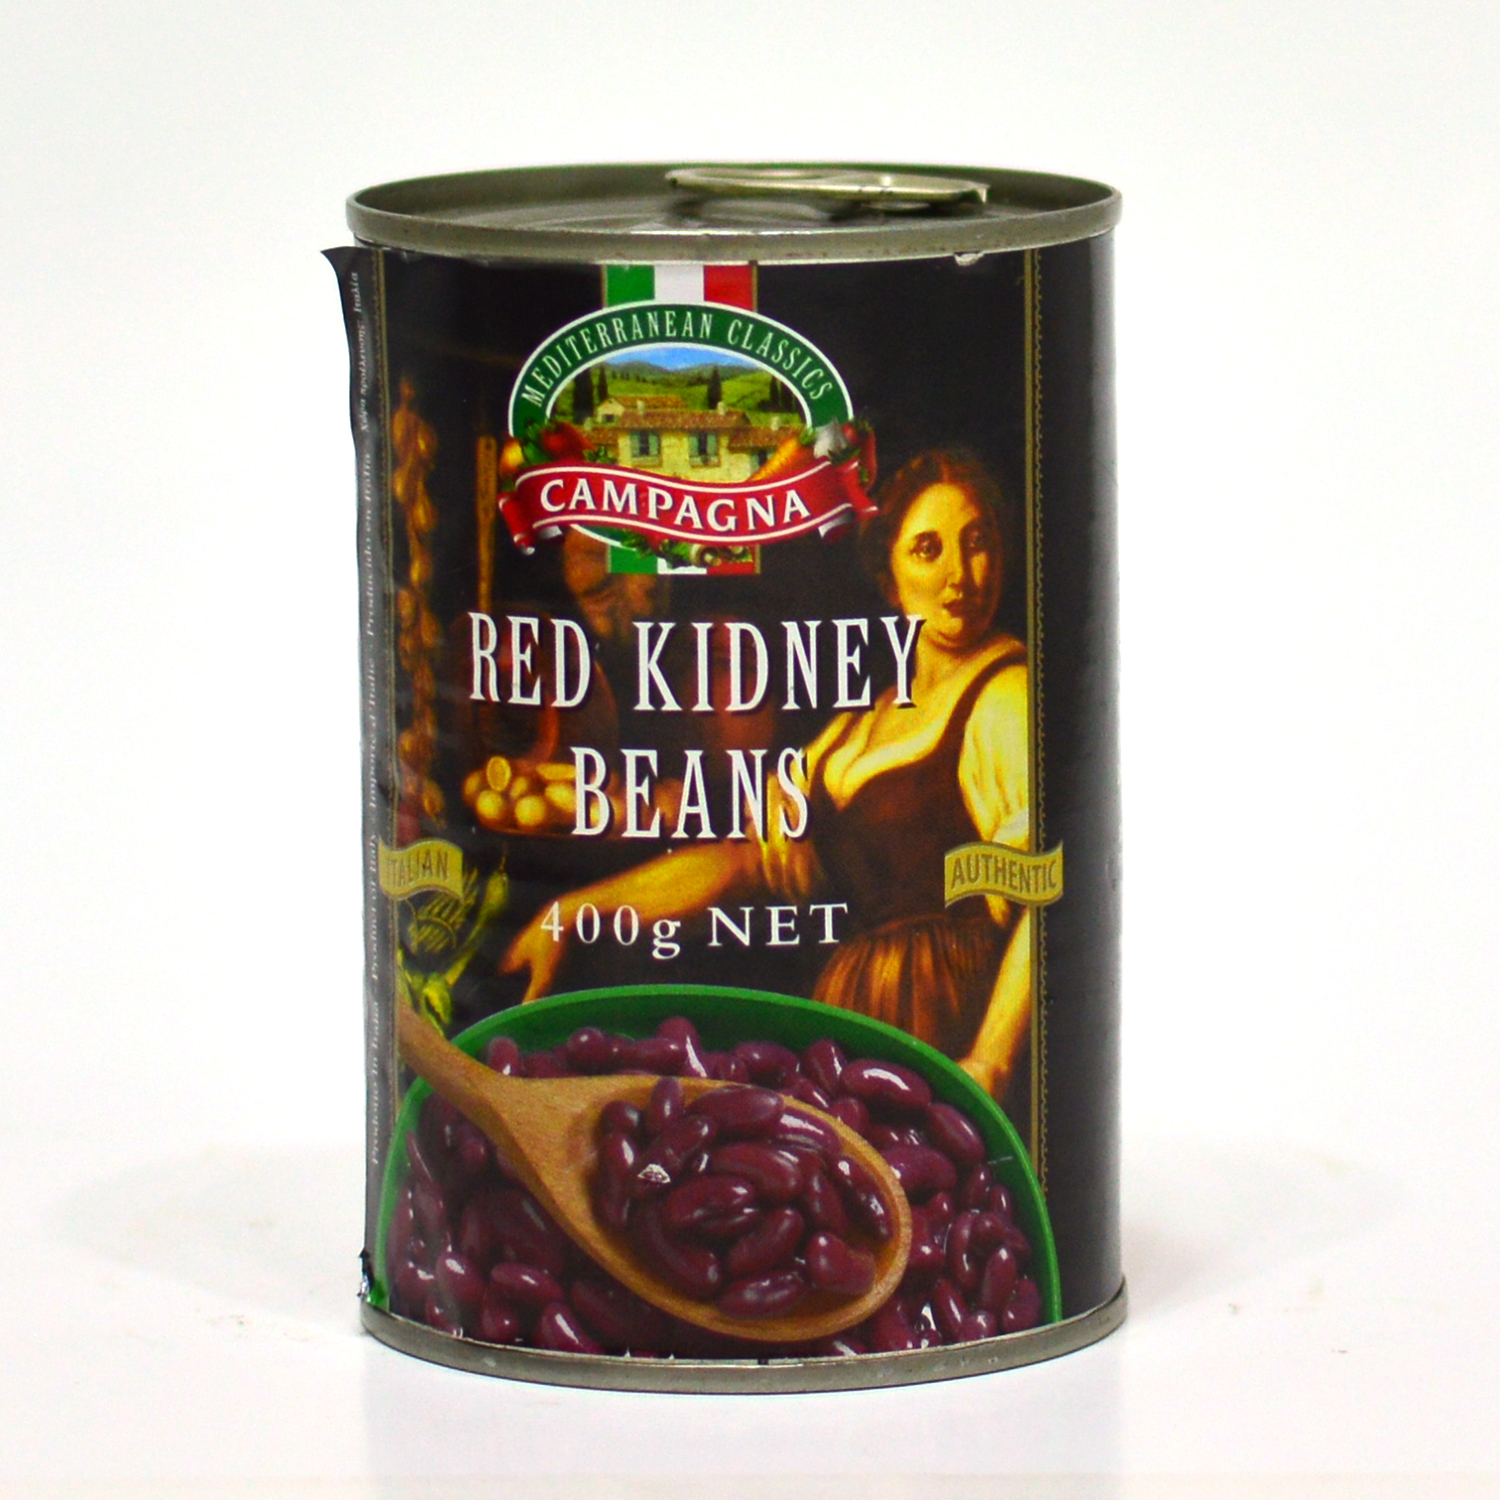 CAMPAGNA Red Kidney Beans 400g